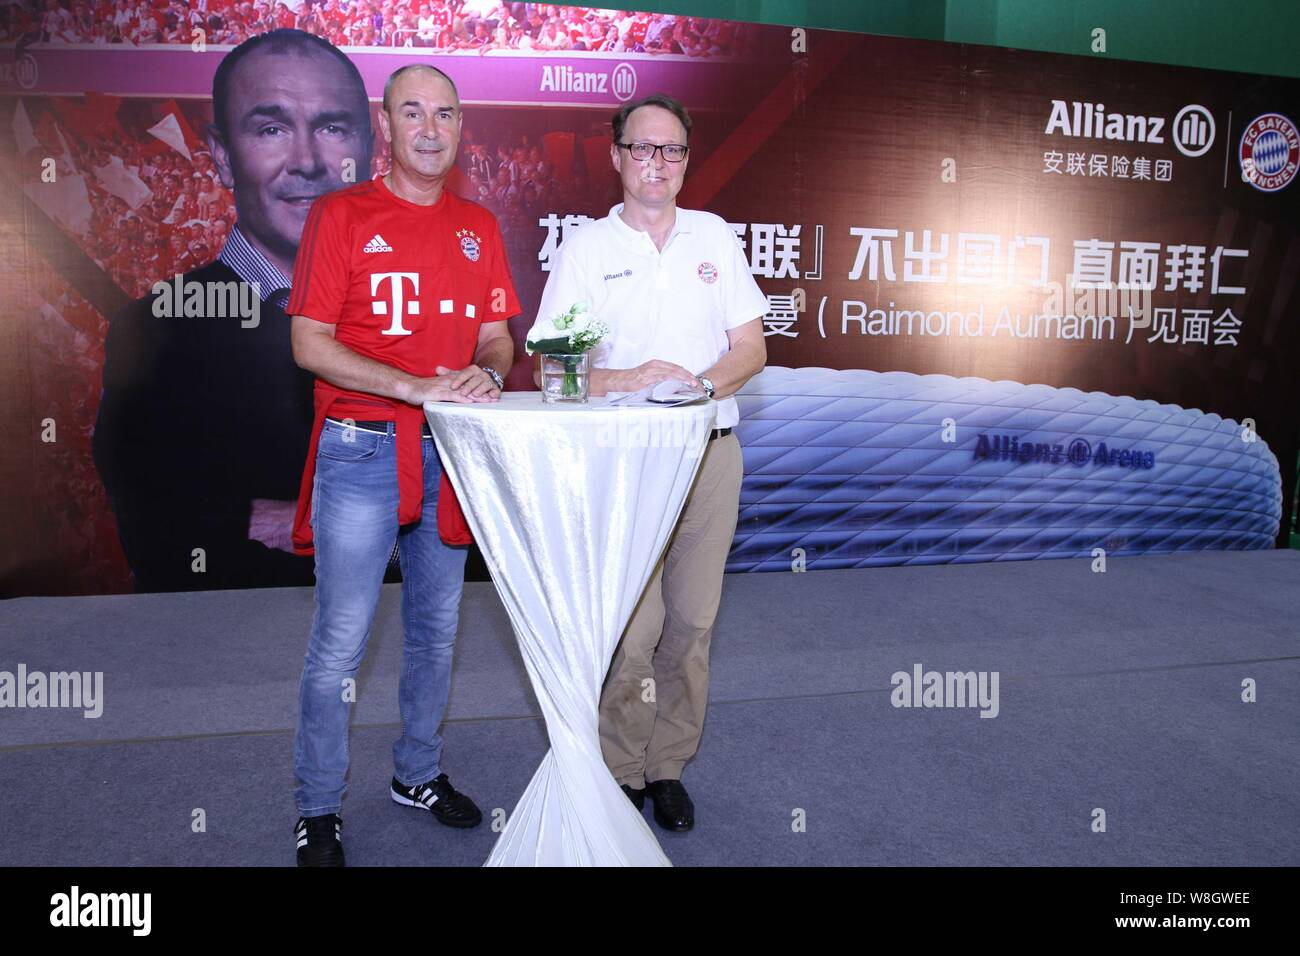 Former German soccer star Raimond Aumann, left, poses during a fan meeting event in Guangzhou city, south China's Guangdong province, 23 July 2015. Stock Photo